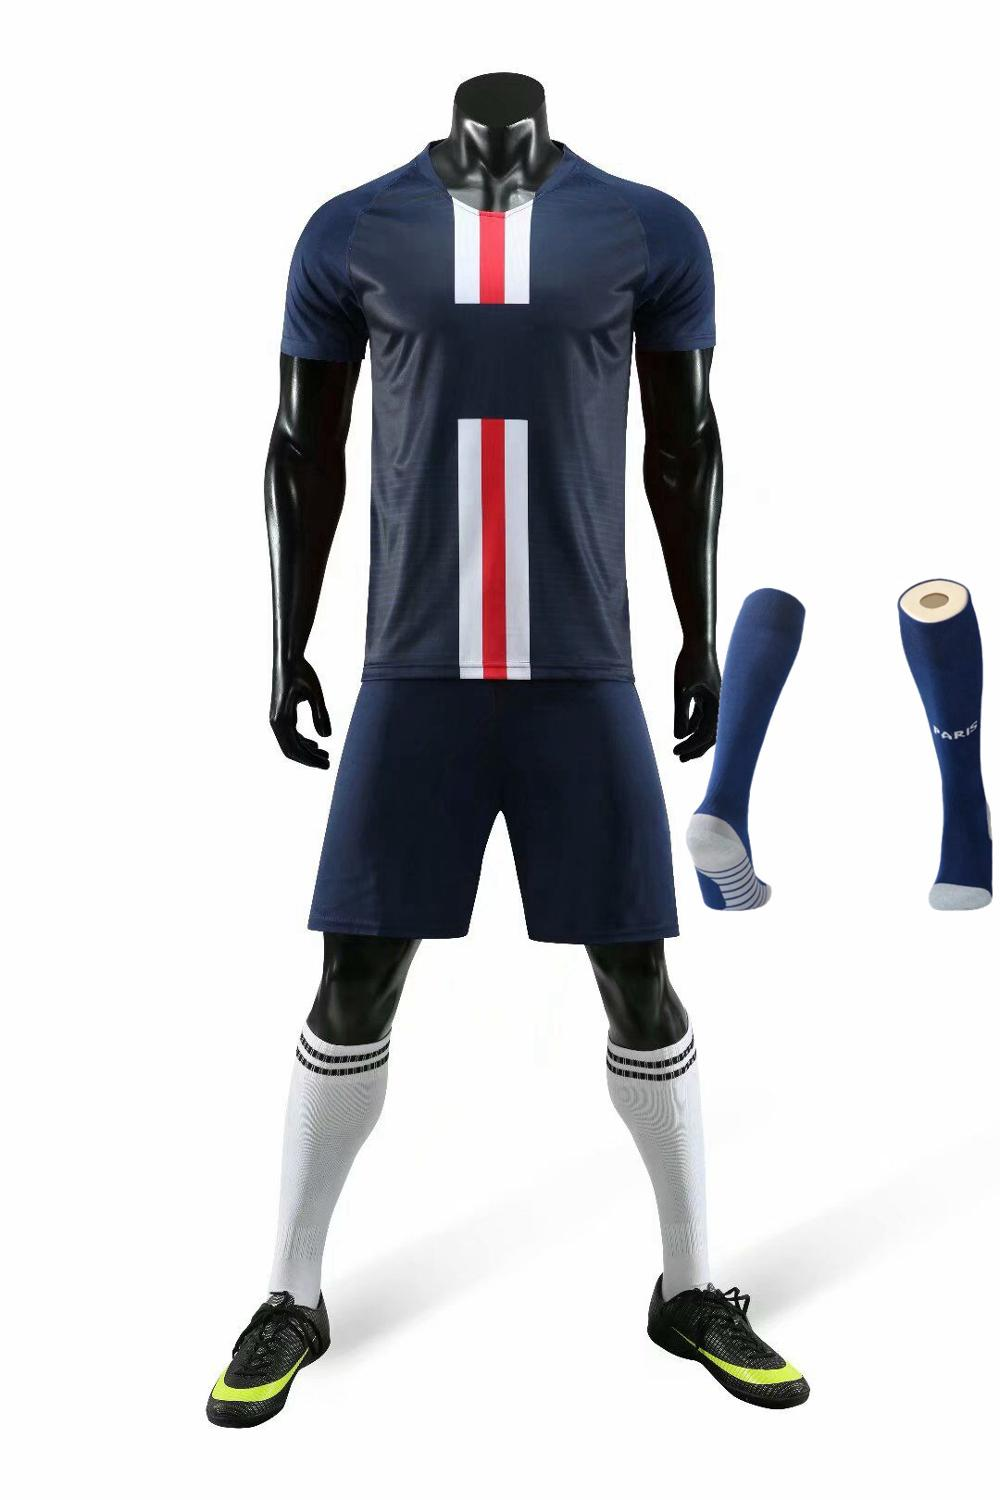 Children Sets football uniforms boys and girls sports kids youth training suits blank custom print soccer set with socks 26